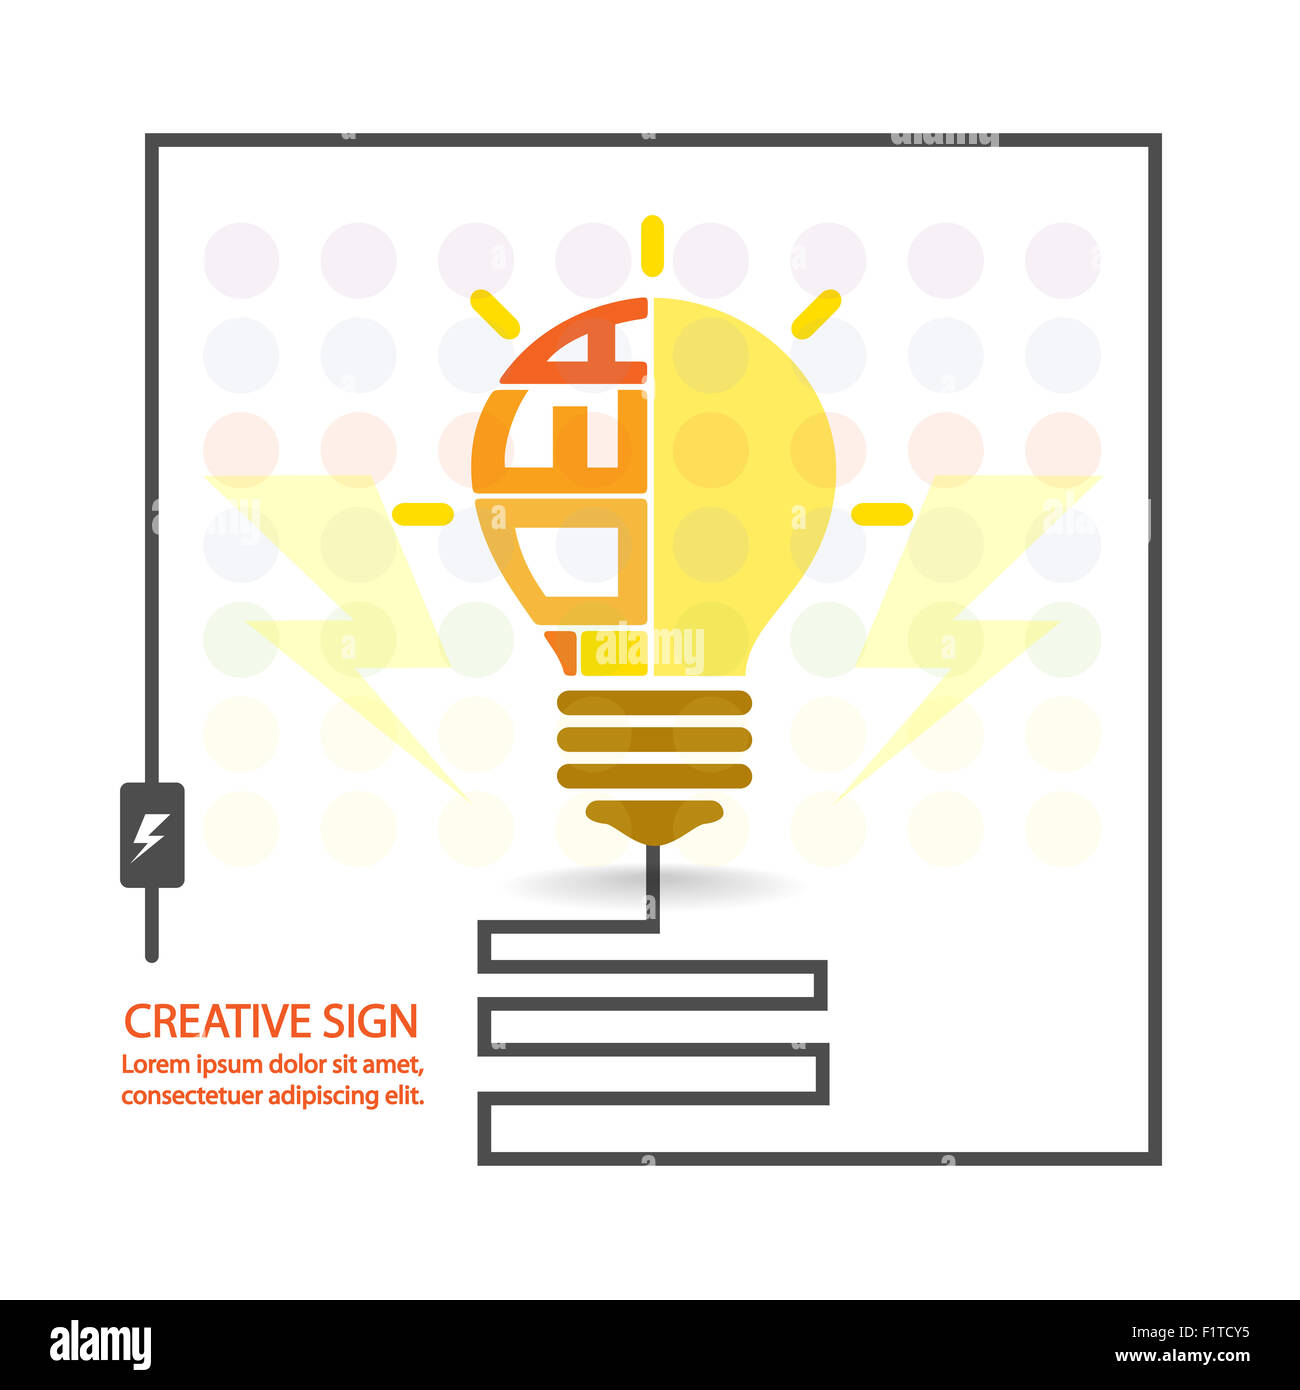 creative light bulb,saving sign,ideas concepts,business background. Stock Photo